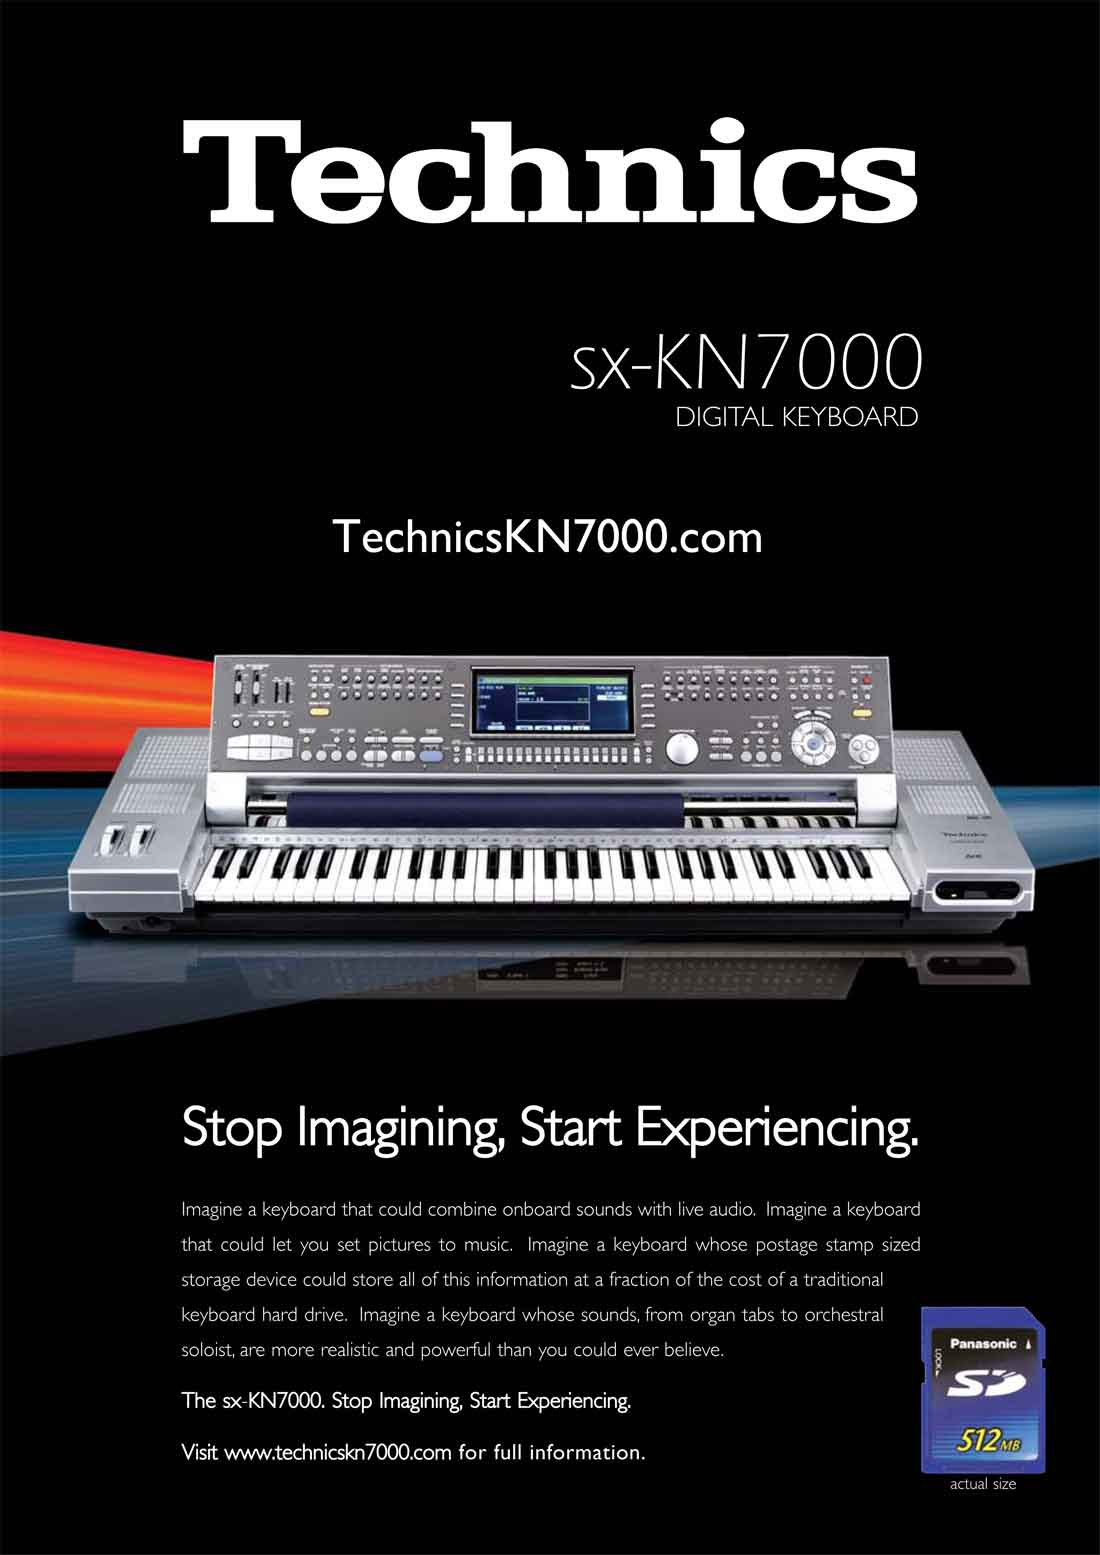 TECHNICS_SX-KN7000_MAGAZINE_ADVERT_01.jpg